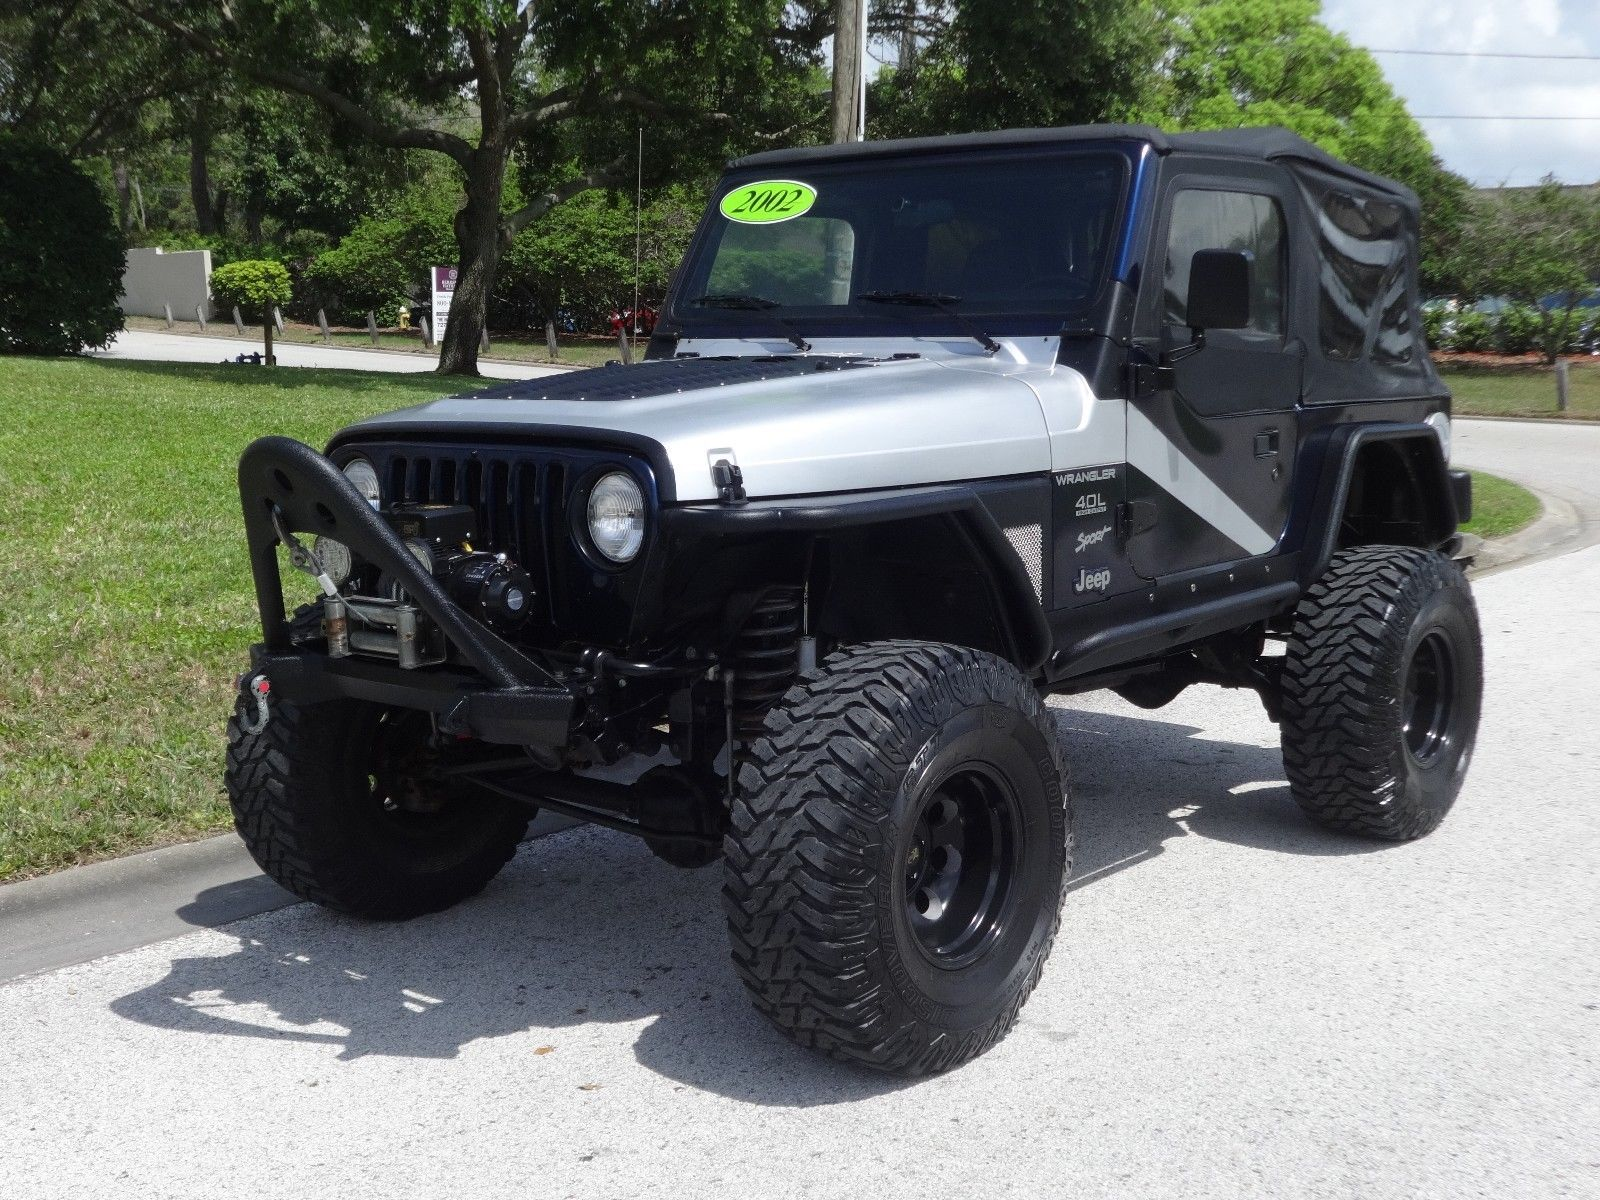 Jeep Wrangler Lift Kits >> Awesome 2002 Jeep Wrangler Sport Port Lift Kit Procomp Whls 35 Coopers Xrc Bumpers A C Auto Fl Jeep Wow 2018 2019